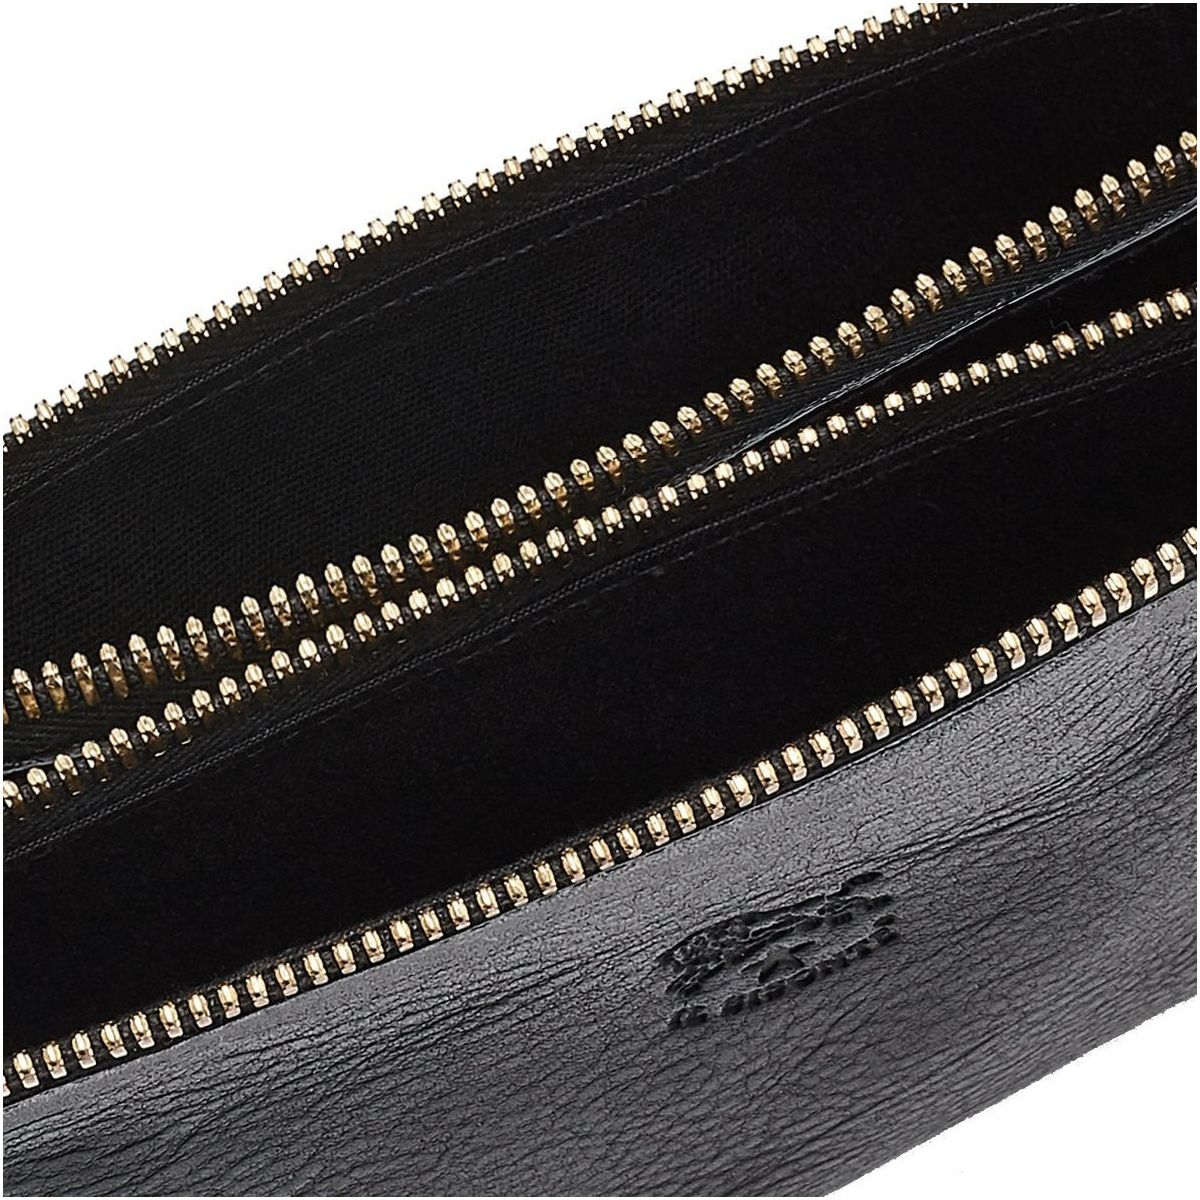 Women's Clutch Bag Talamone in Cowhide Double Leather BCL022 color Black | Details